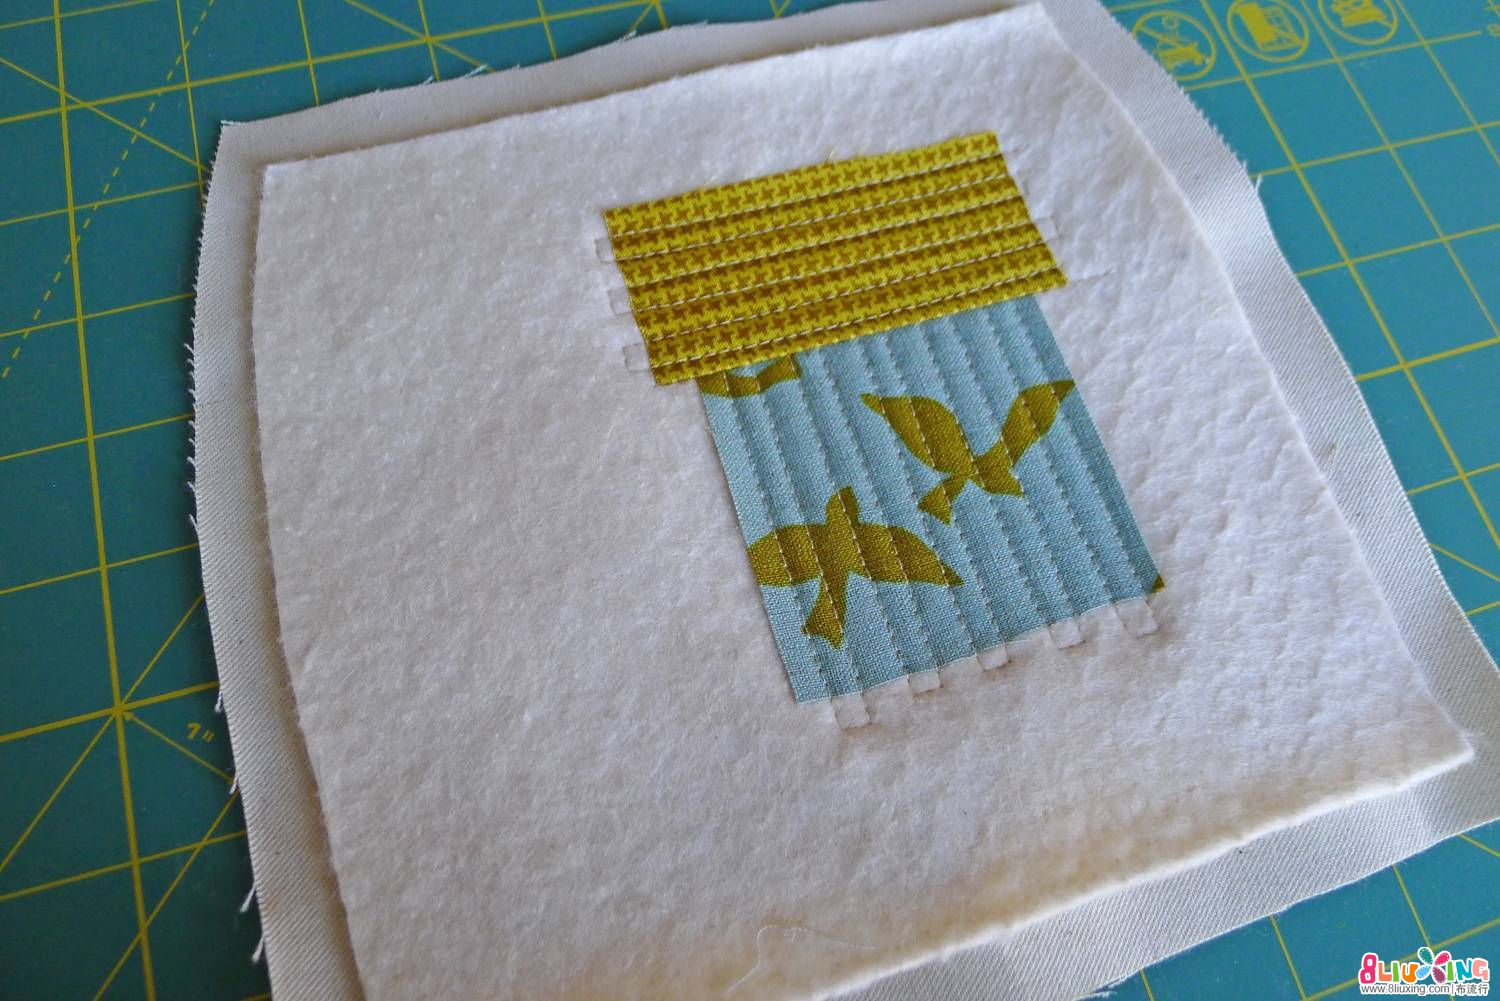 quilt_as_you_go (3).jpg